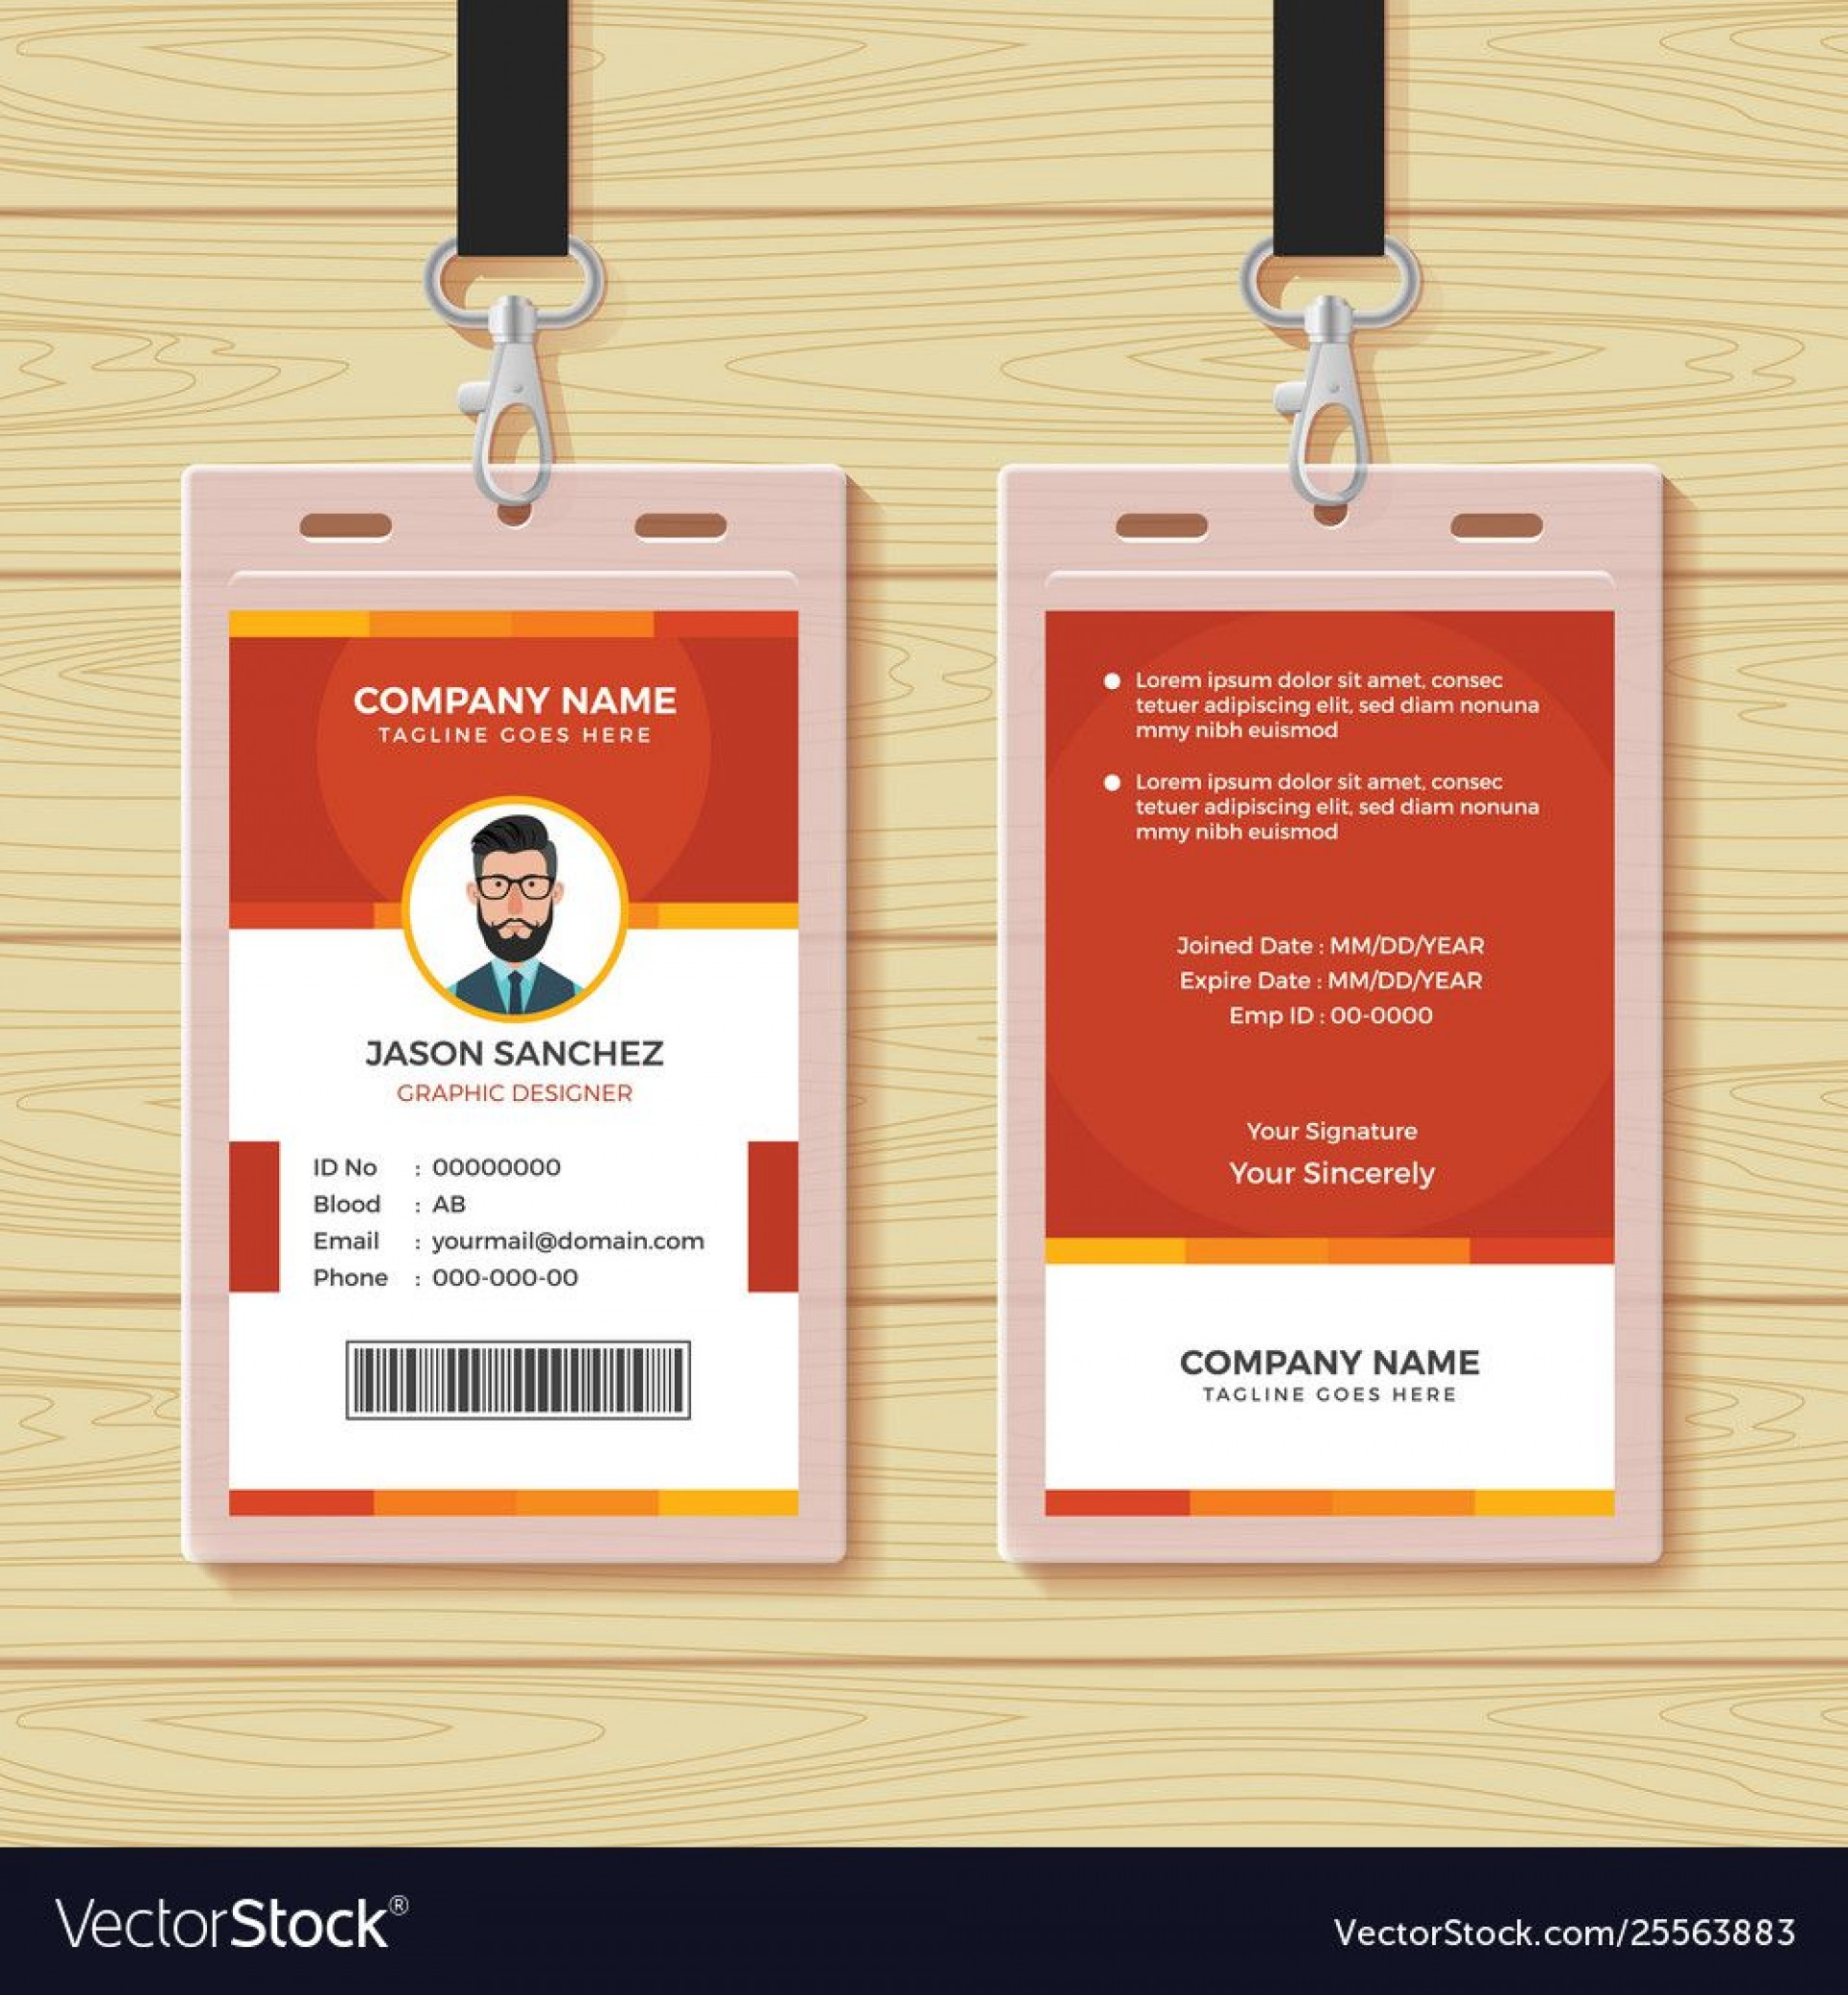 007 Stunning Employee Id Badge Template Concept  Avery Card Free Download Word1920